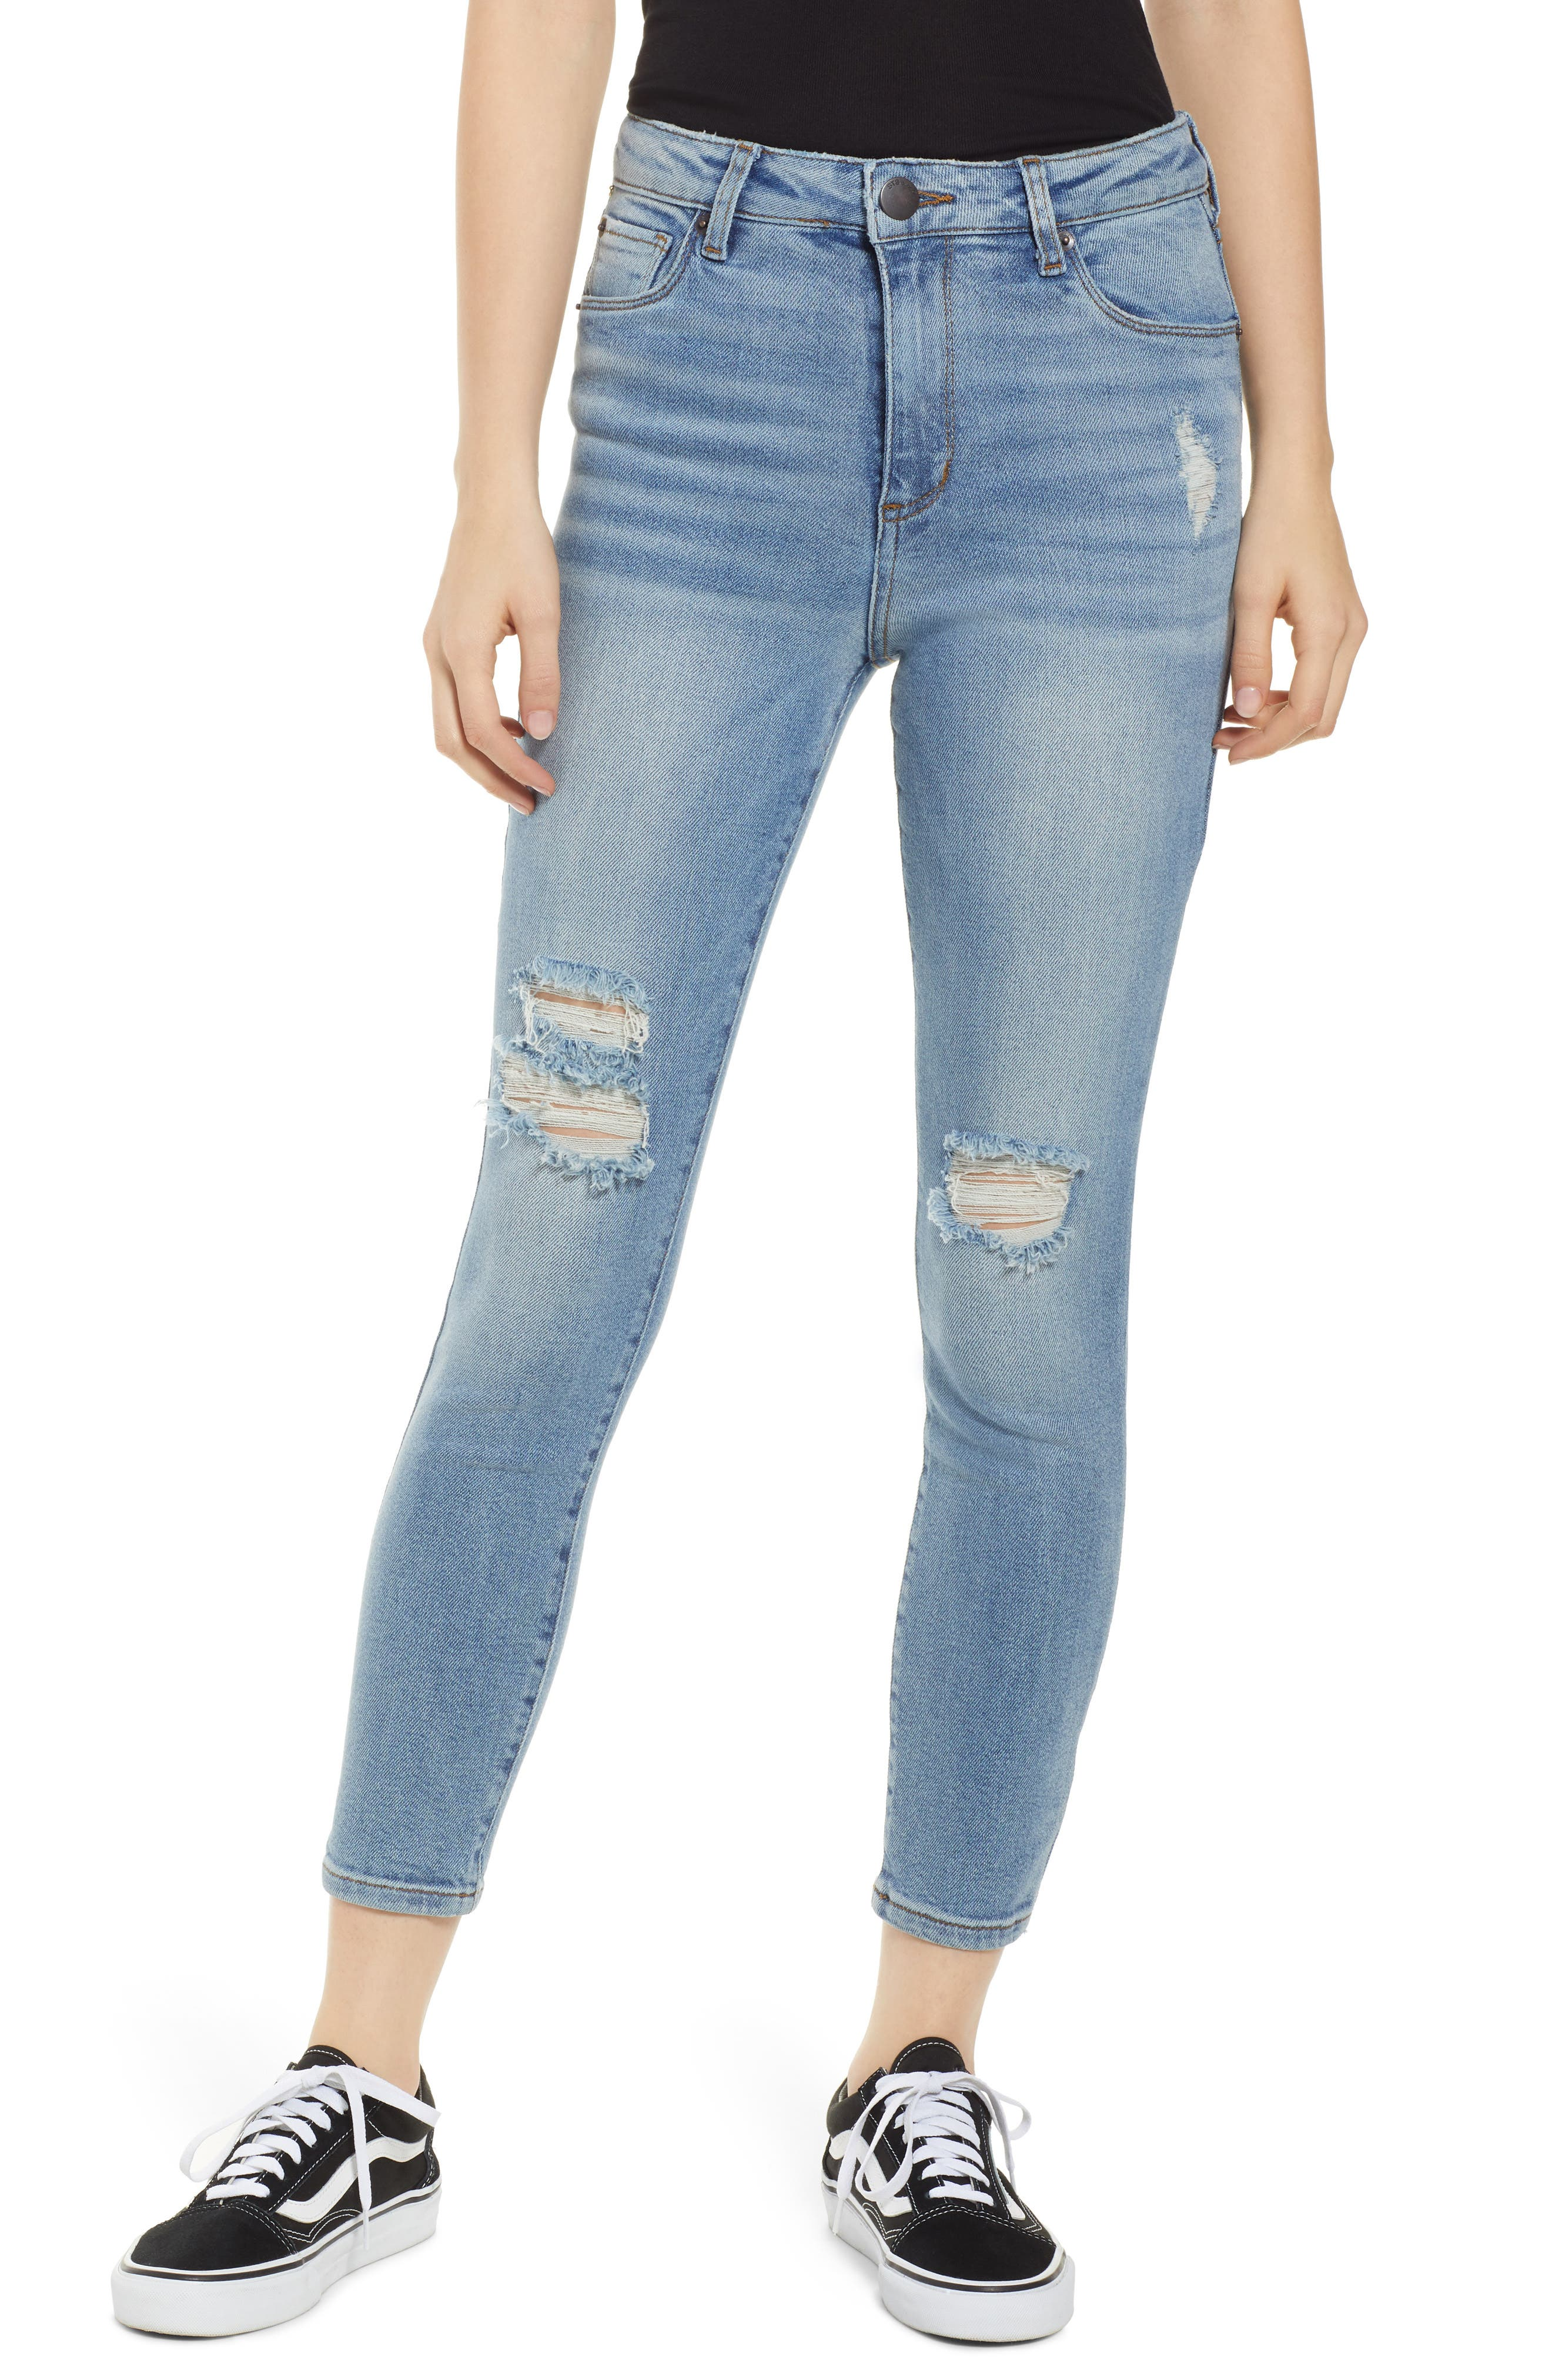 STS BLUE, Brie High Waist Ripped Skinny Jeans, Main thumbnail 1, color, 400